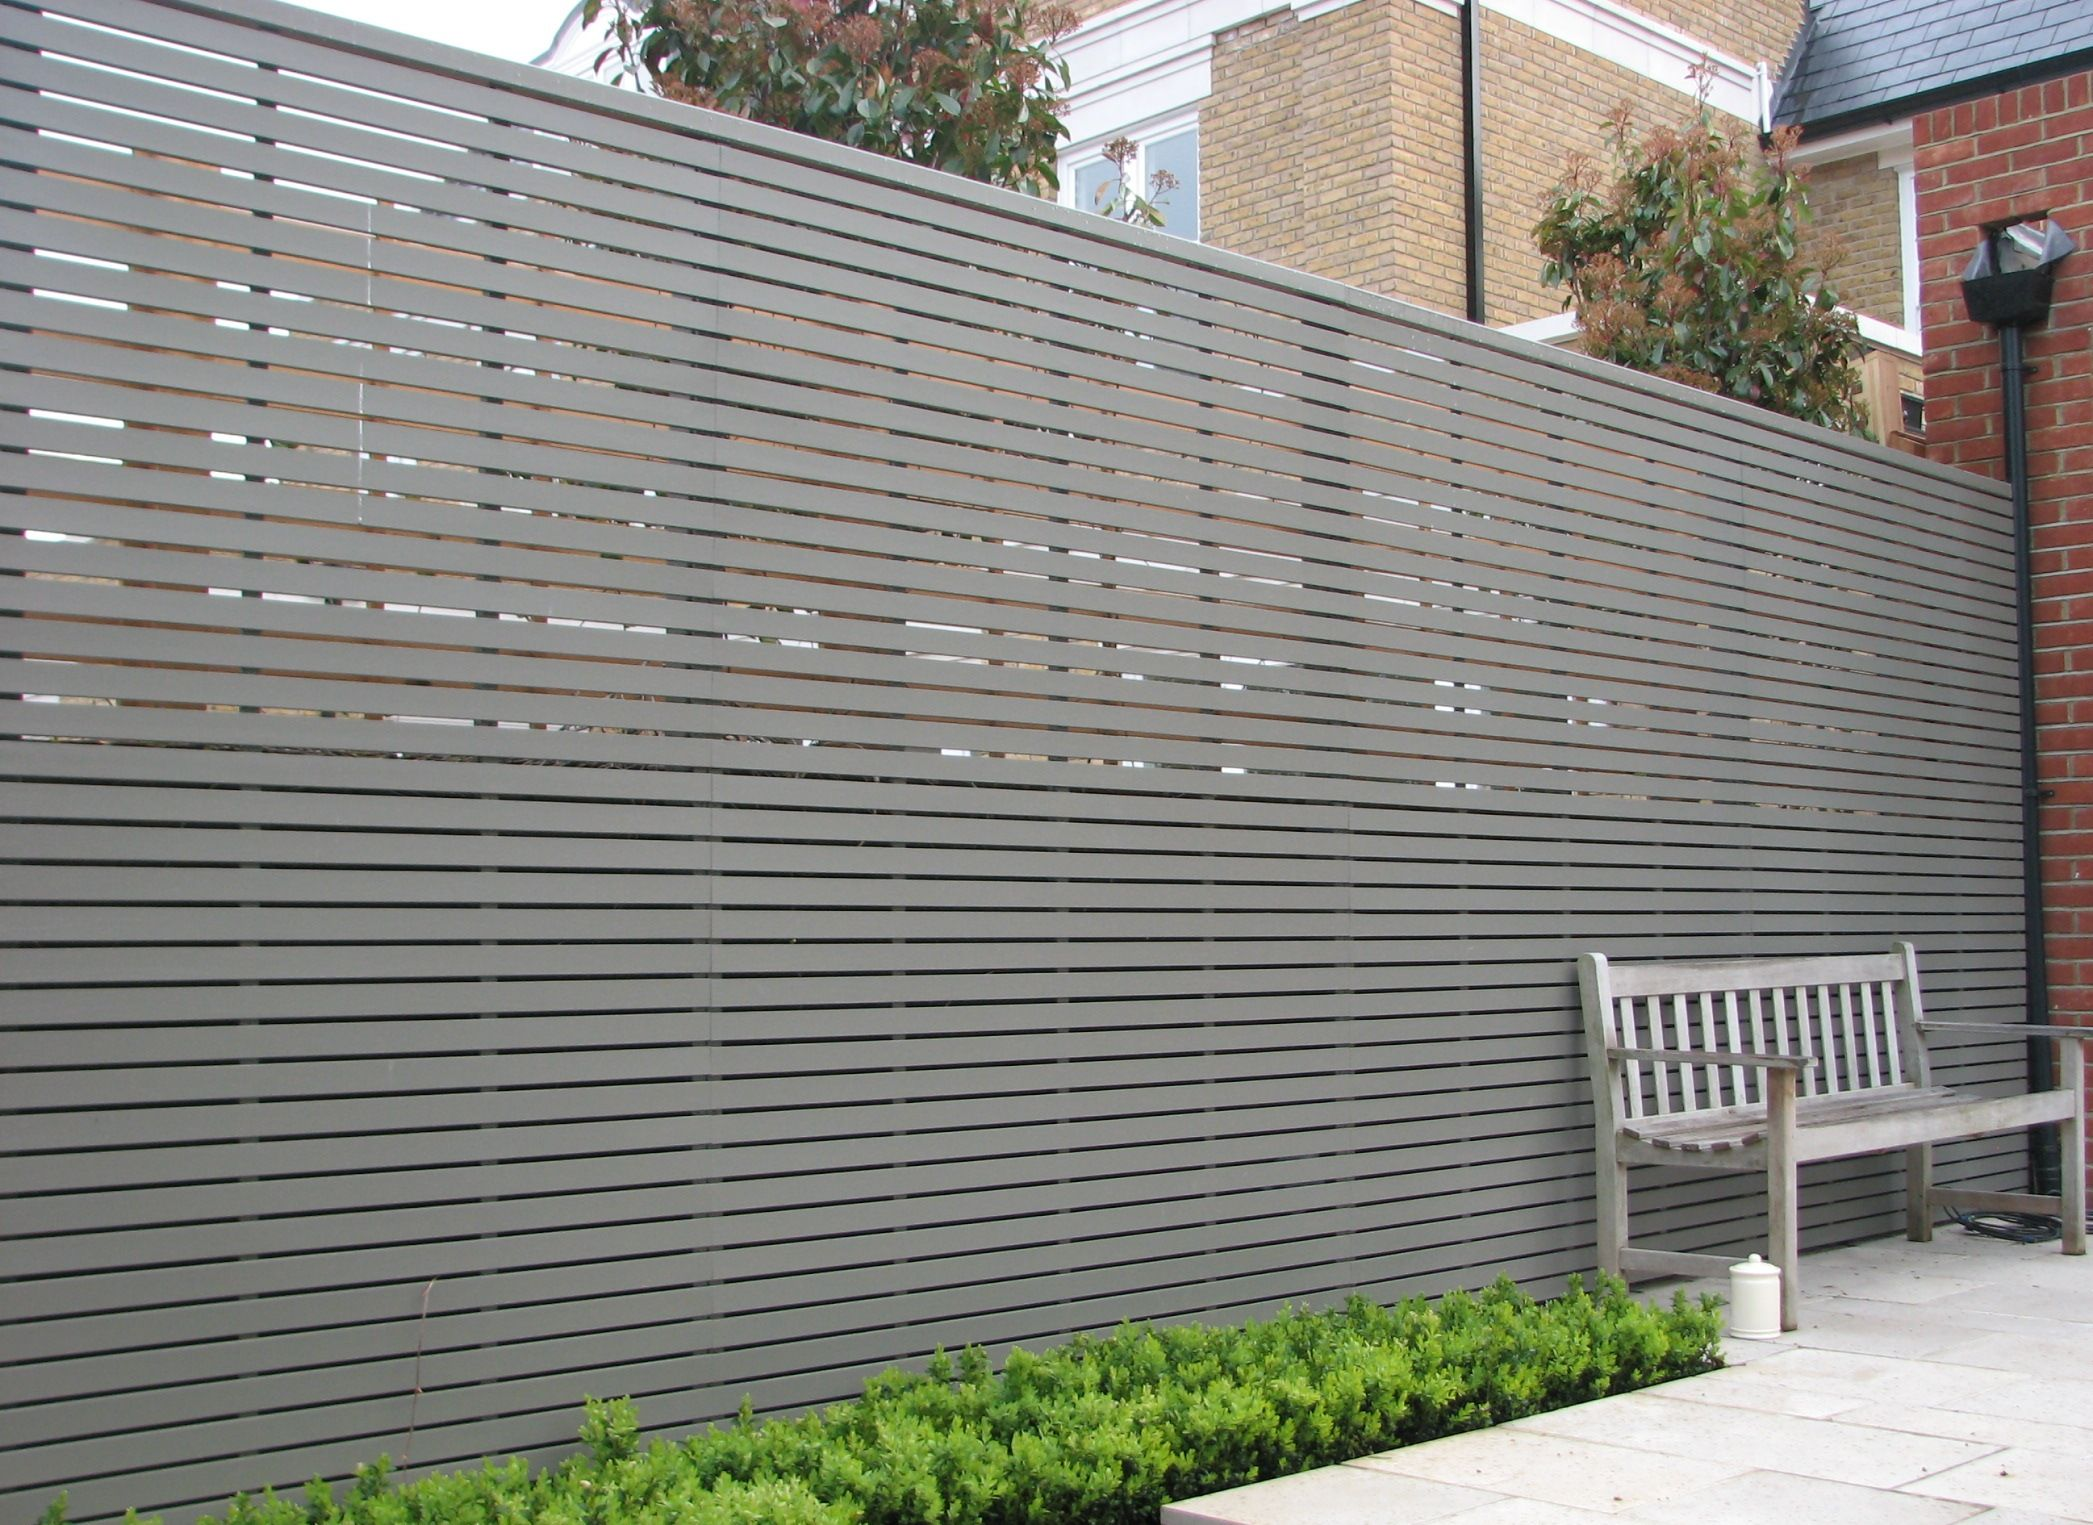 Find This Pin And More On GARDENS. Modern Metal Fence ...